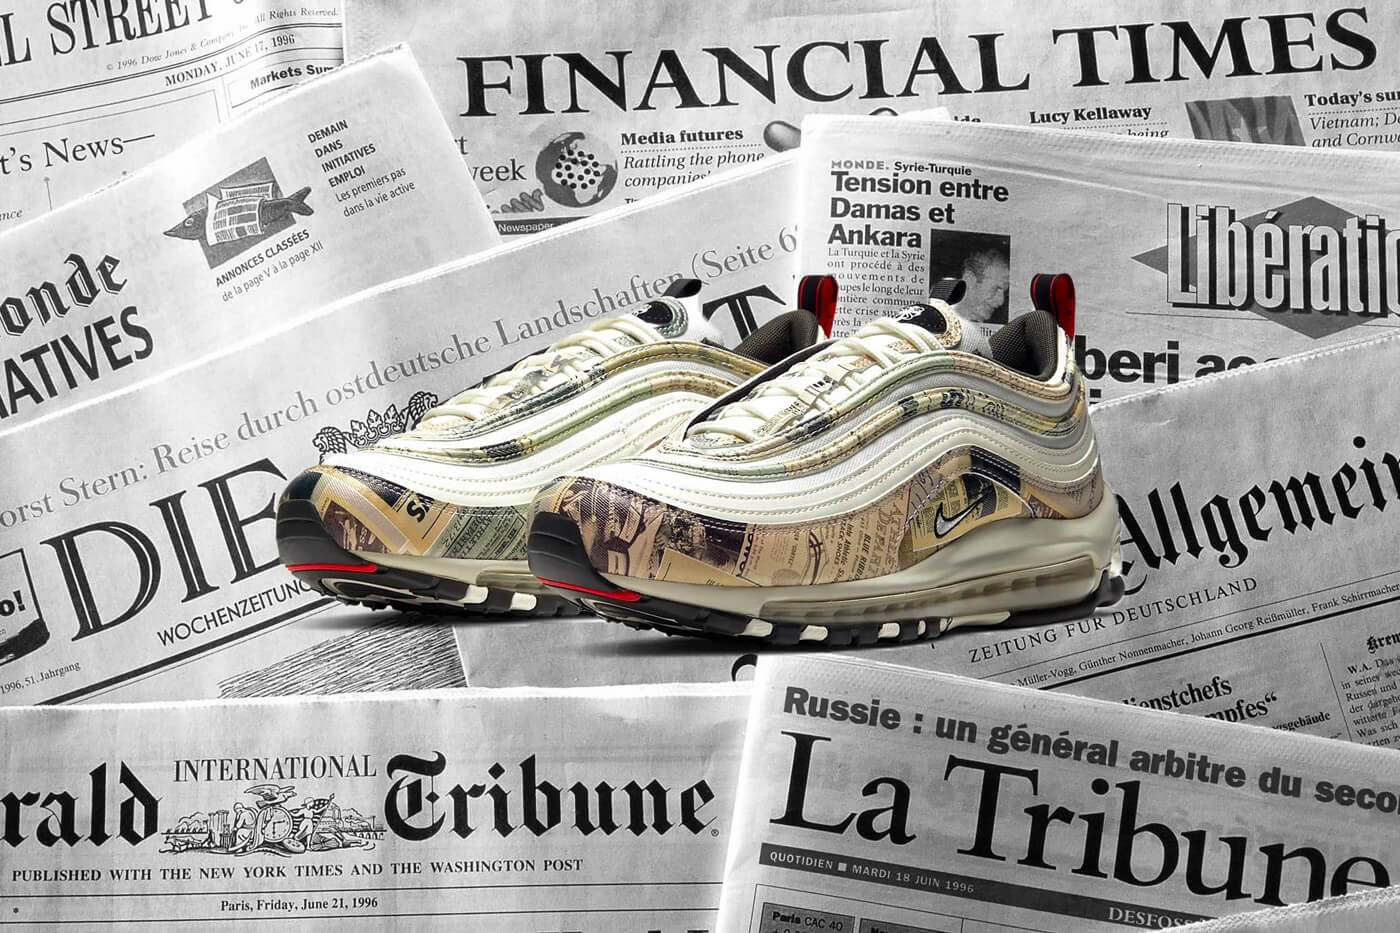 The Nike Air Max 97 'Newspaper' Is Hot Off The Press